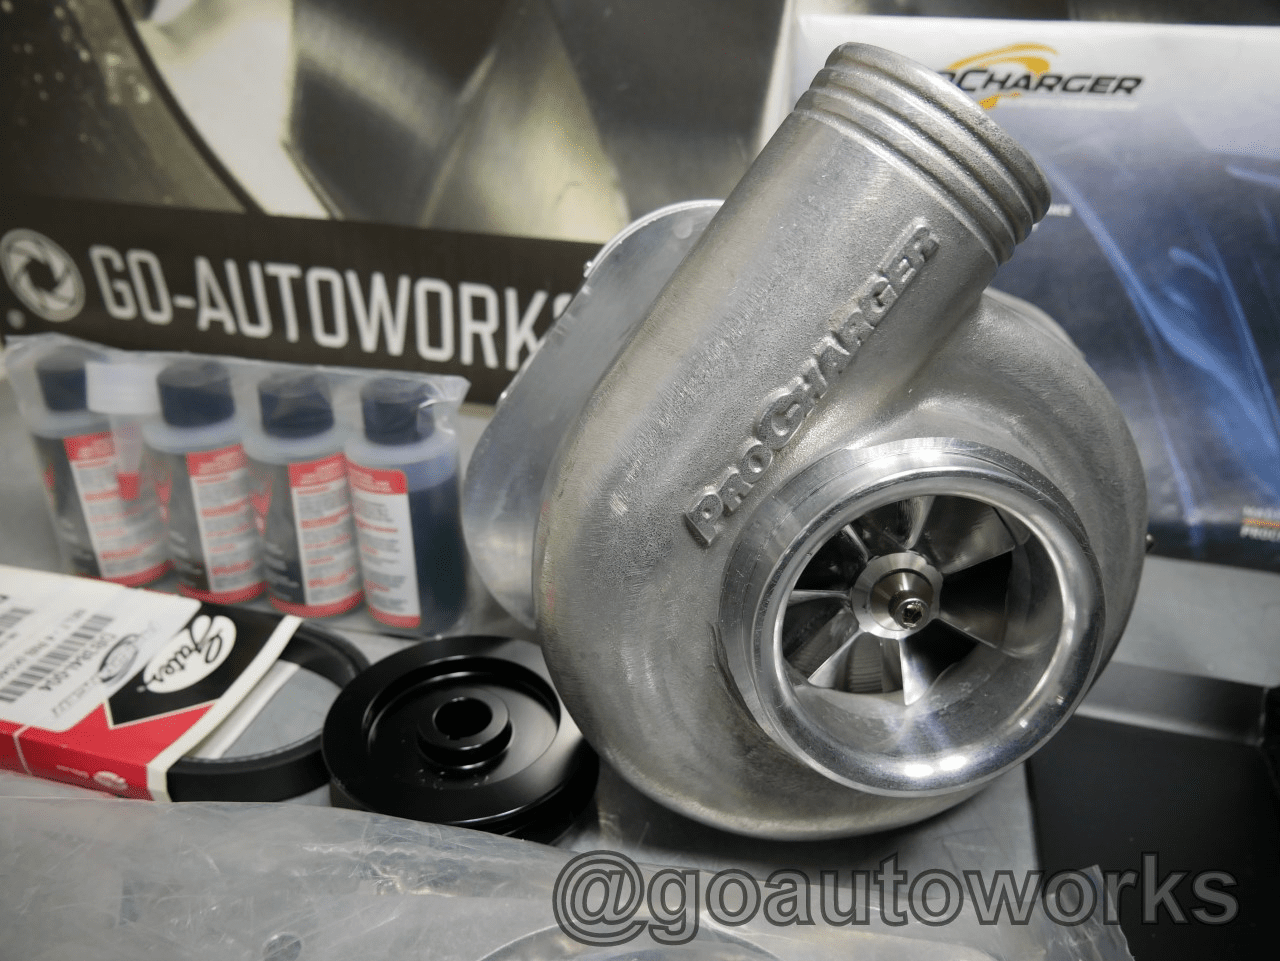 GO-AUTOWORKS B Series C1A Tuner Supercharger Kit-Low Boost